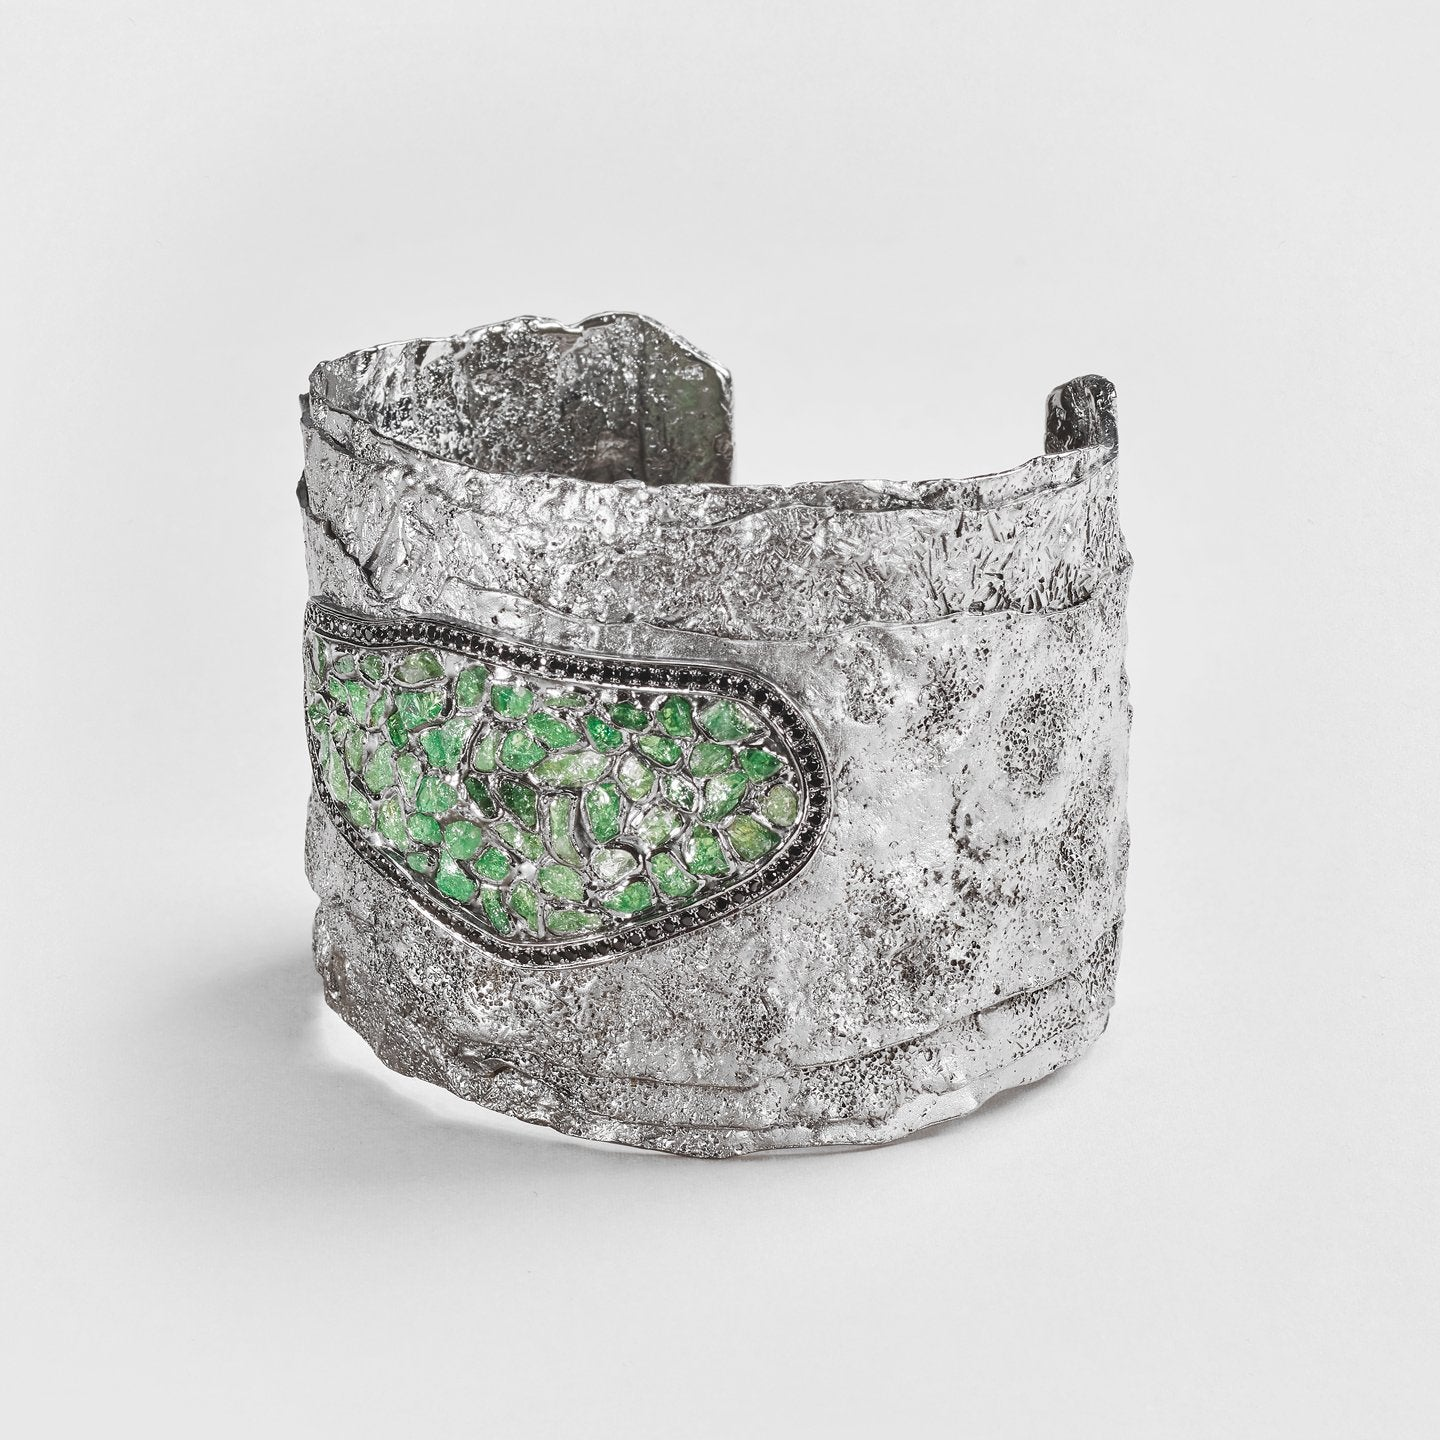 Arral Tsavorite and Spinel Bangle